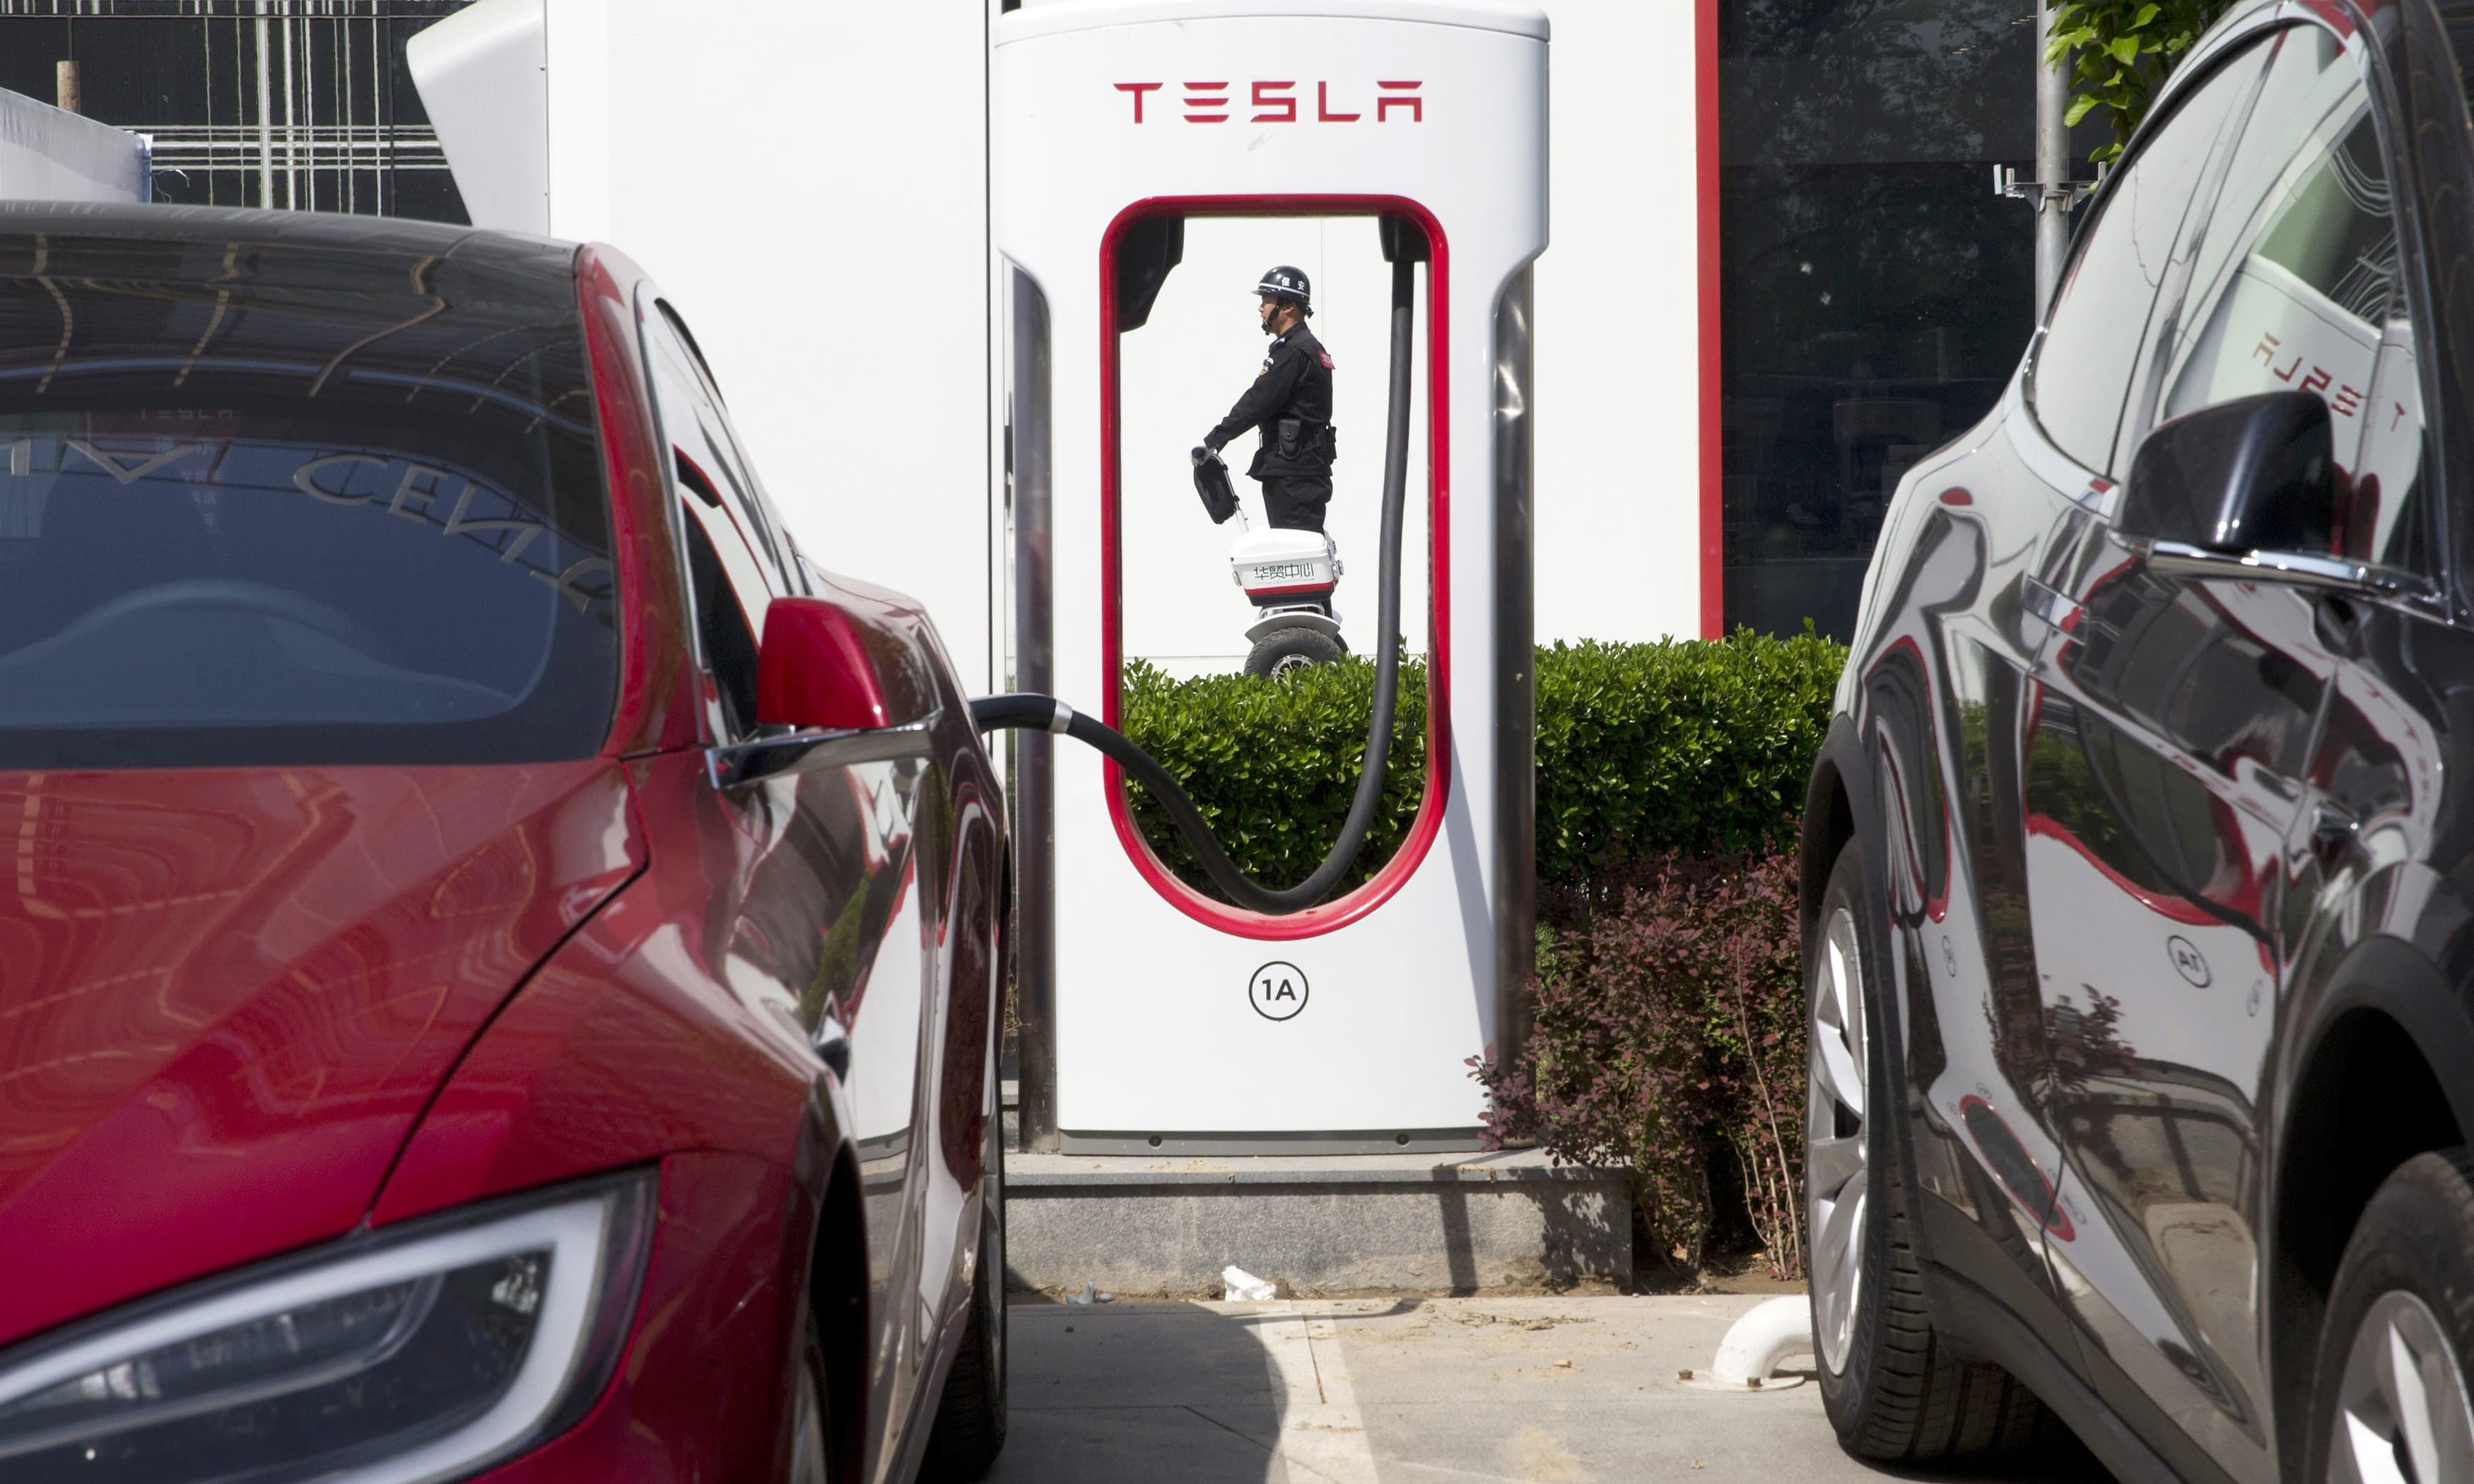 In this April 14, 2017 photo, a security guard moves past Tesla electric vehicle charging station in Beijing. — AP